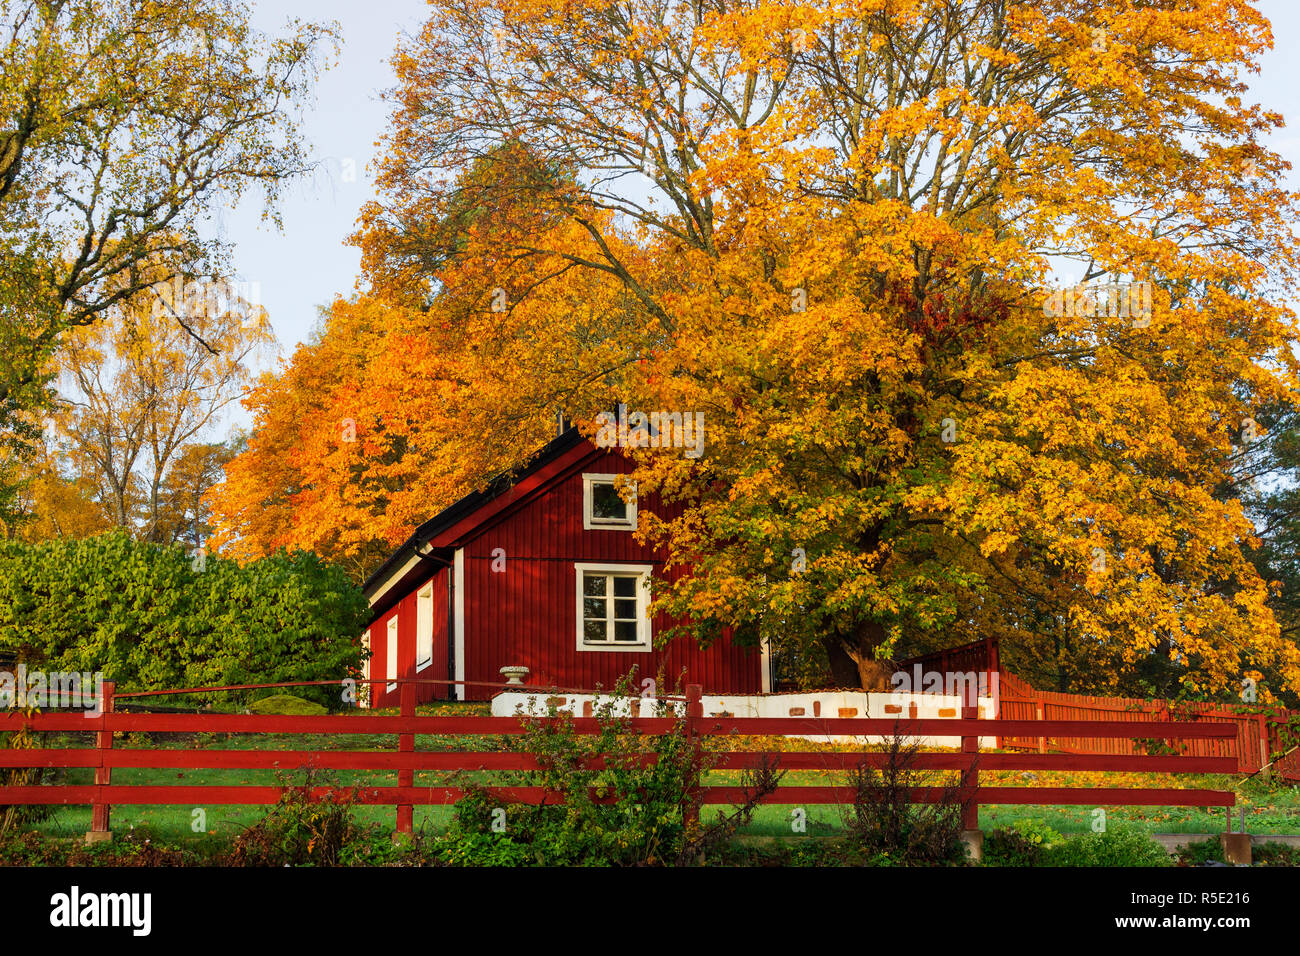 Traditional red farm house in Sigtuna's countryside, Marsta, Sweden. - Stock Image